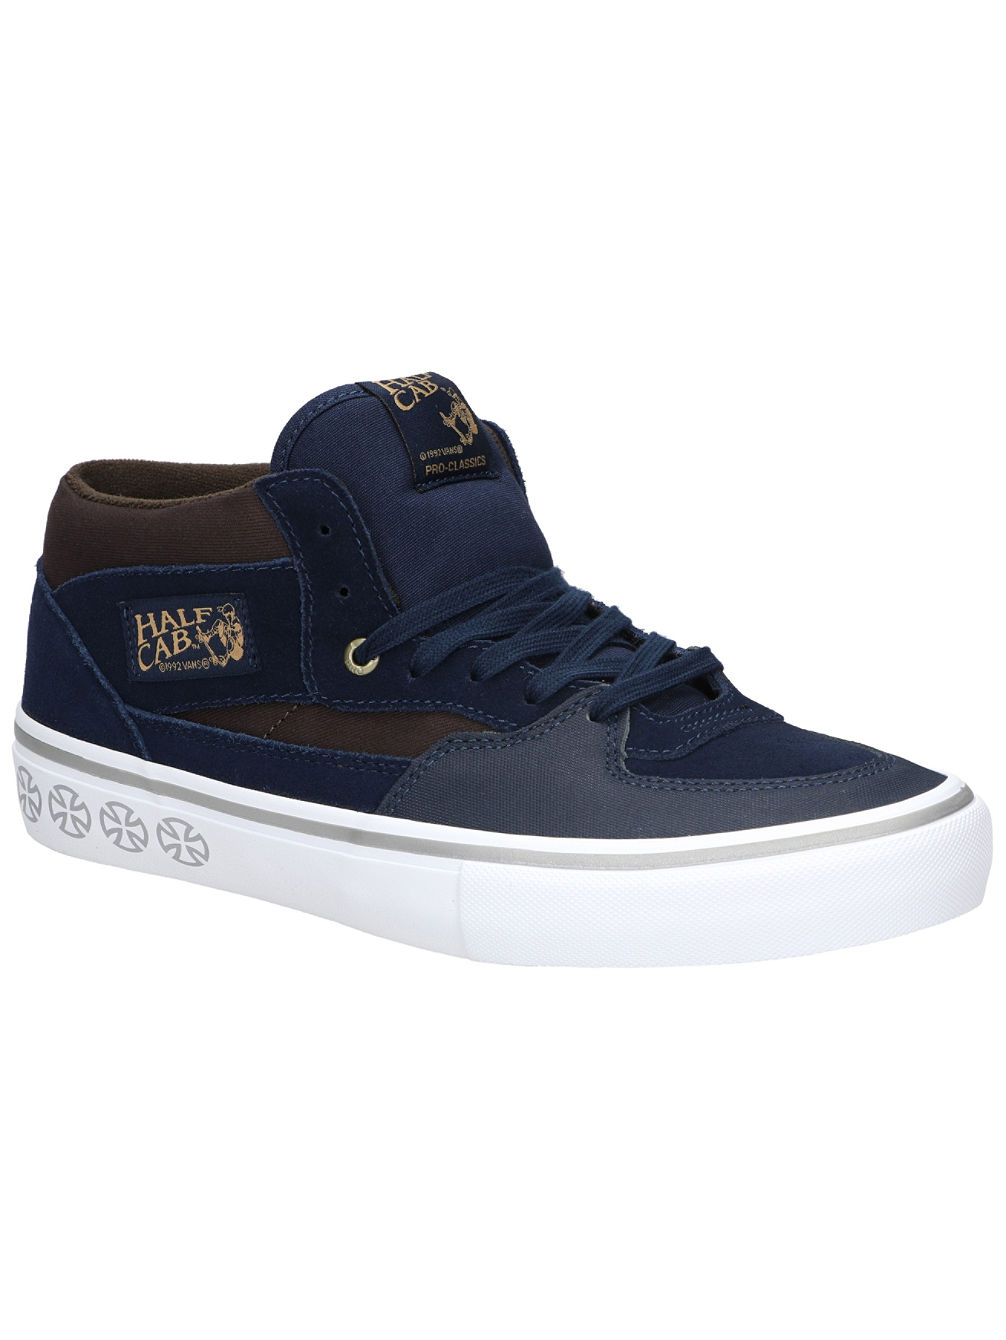 2e3e48ad9c Buy Vans X Independent Half Cab Pro Skate Shoes online at Blue Tomato